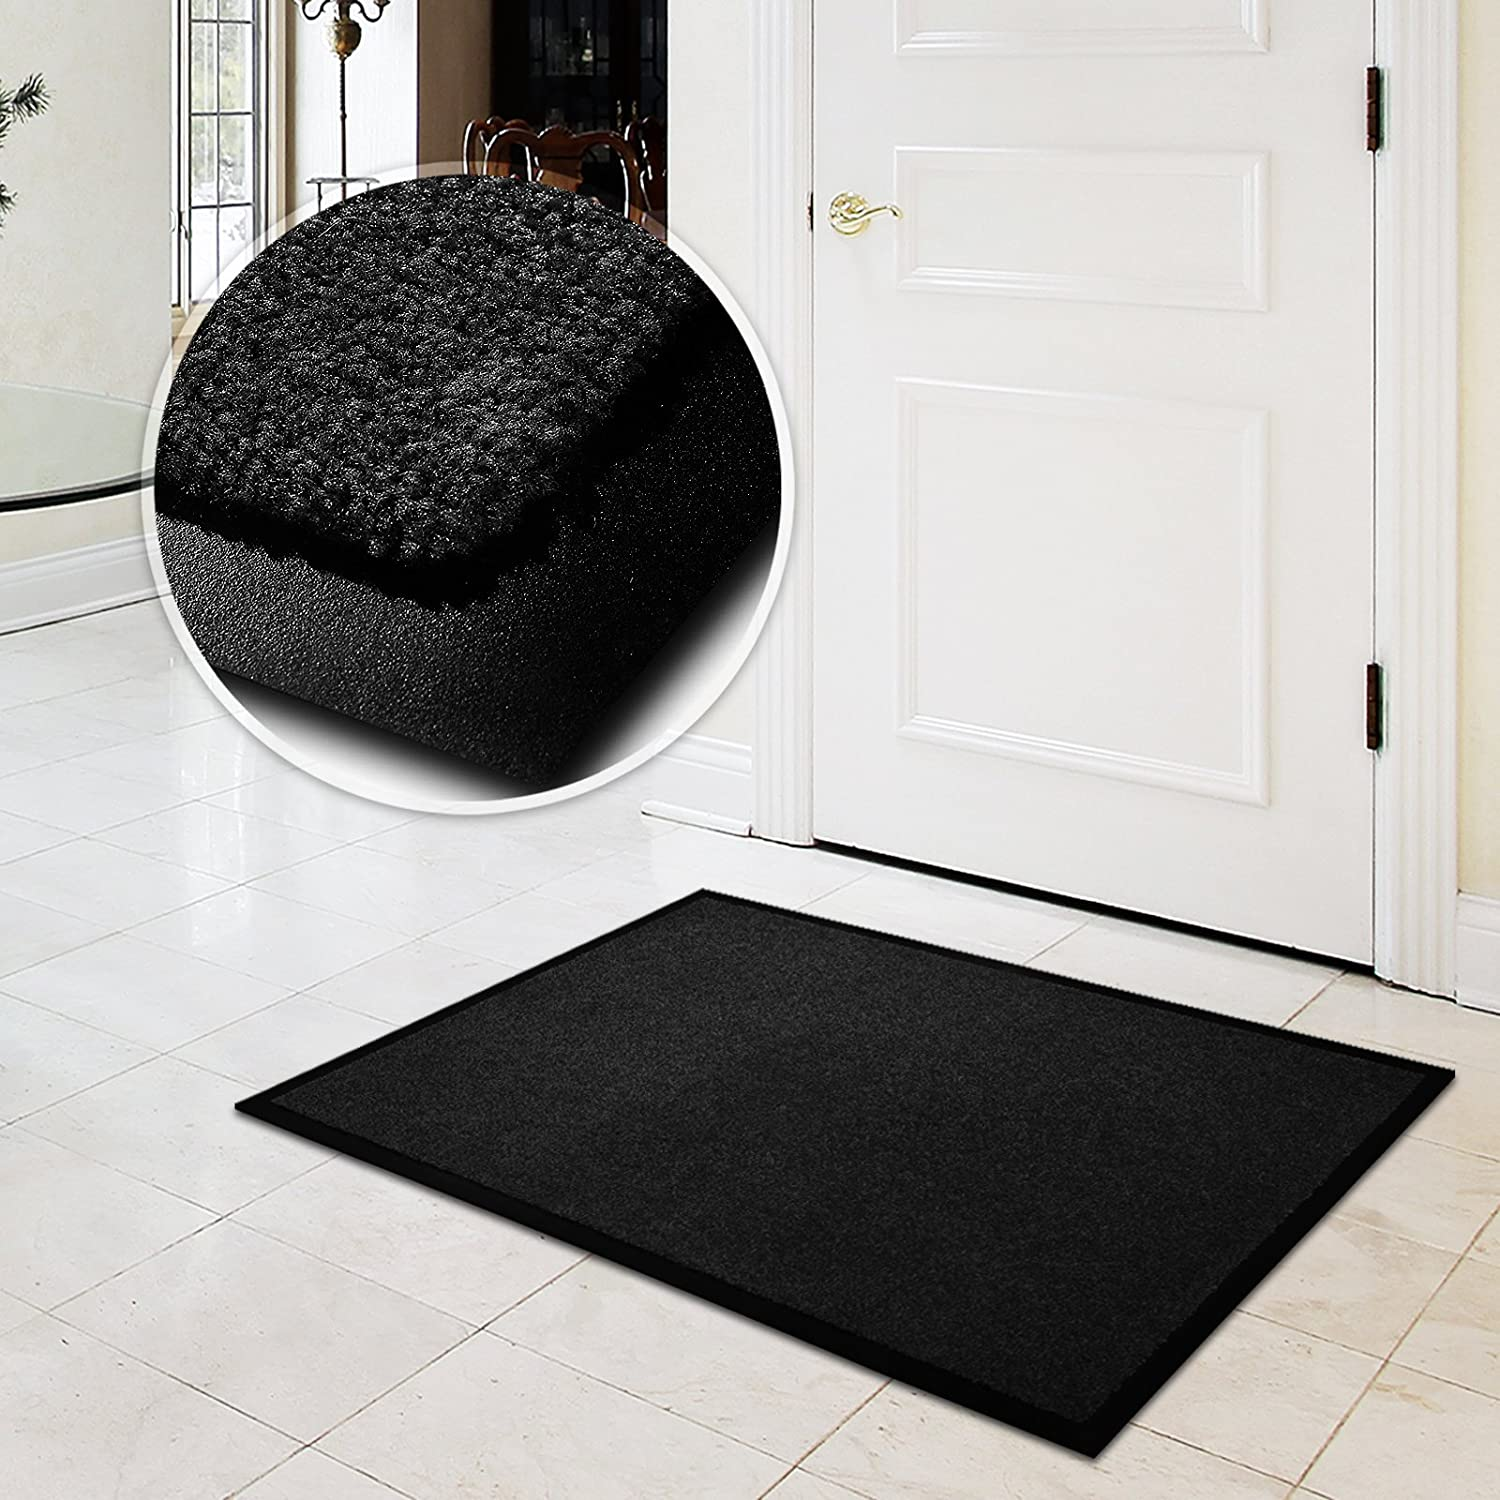 36 x 48 4250953752709 Turquoise casa pura Entrance Mat Europes # 1 Front Door Mat for Home and Business